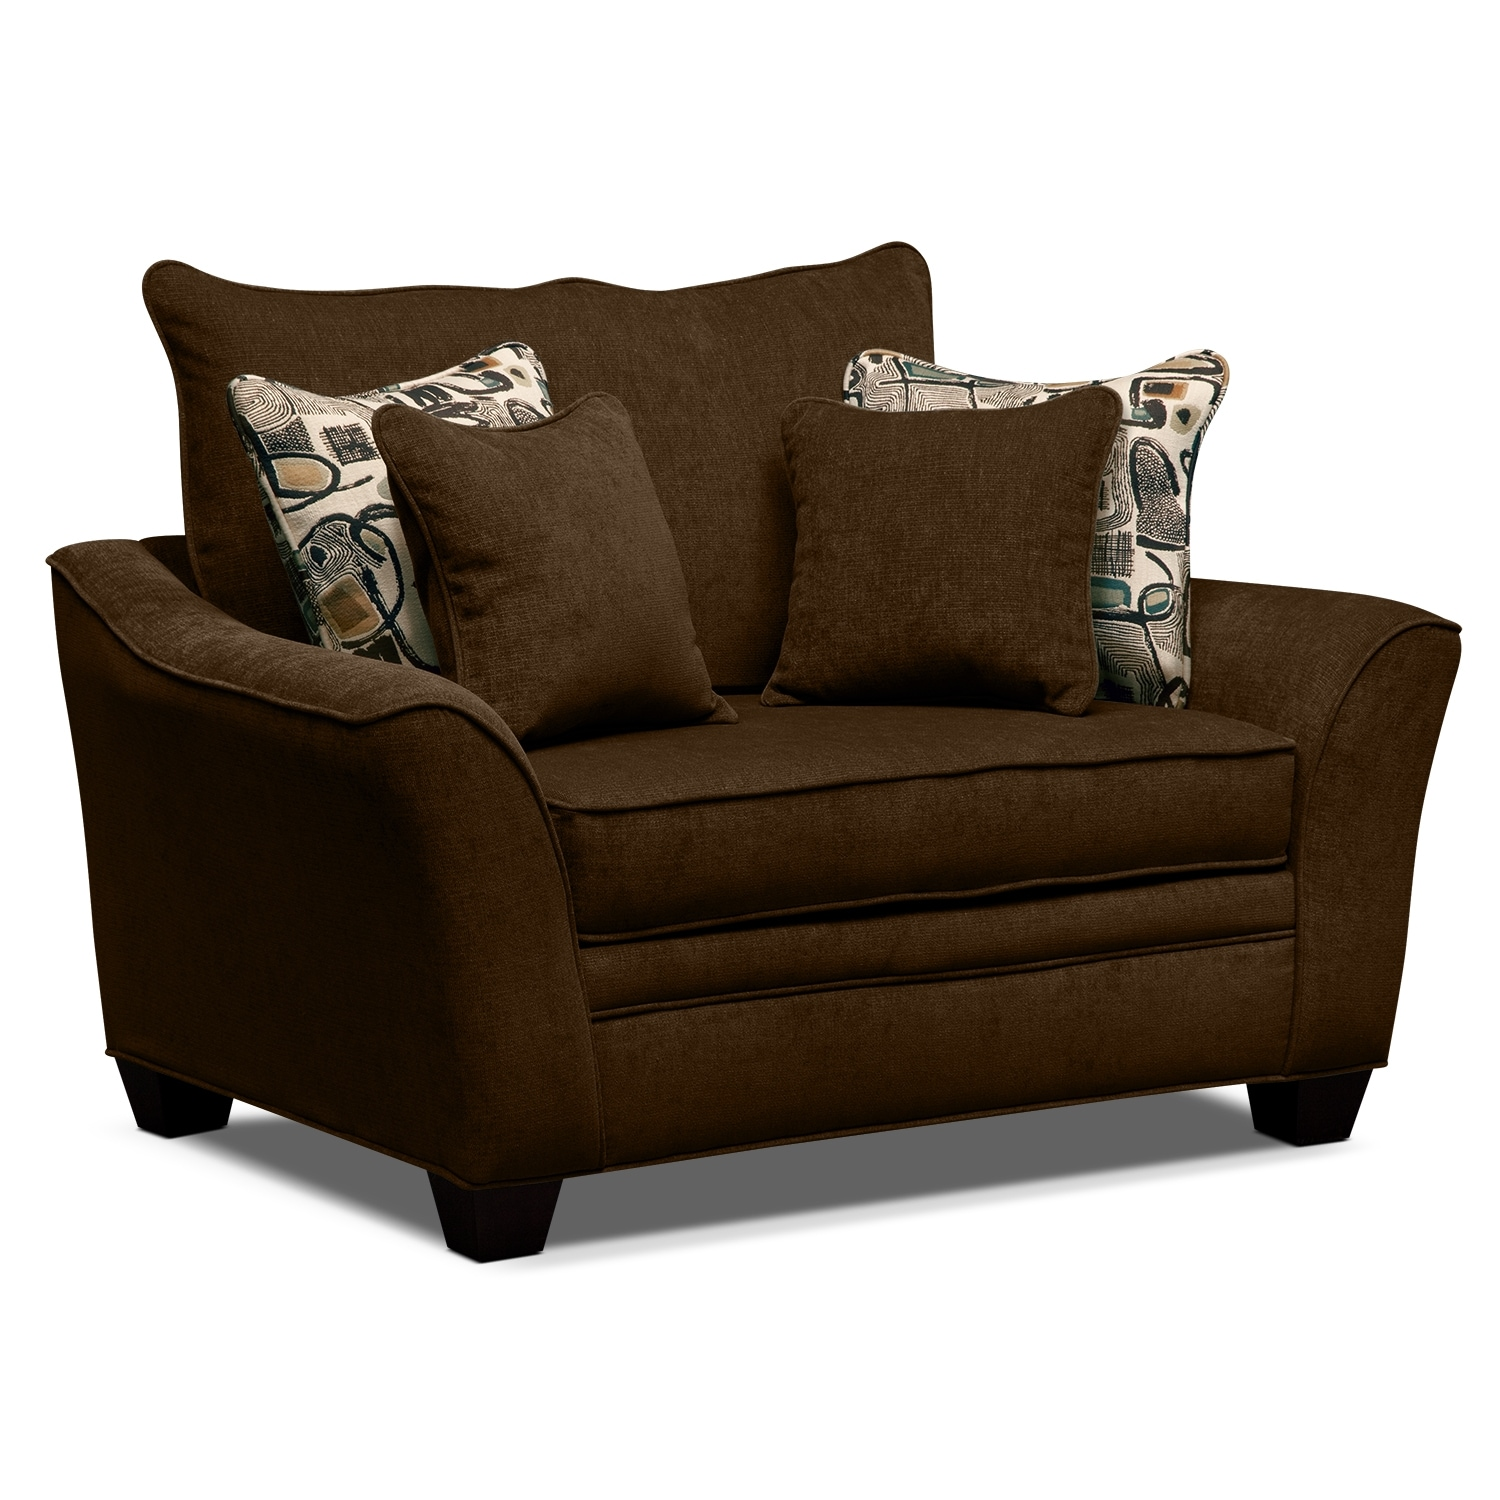 Living Room Furniture - Albion Chocolate Chair and a Half